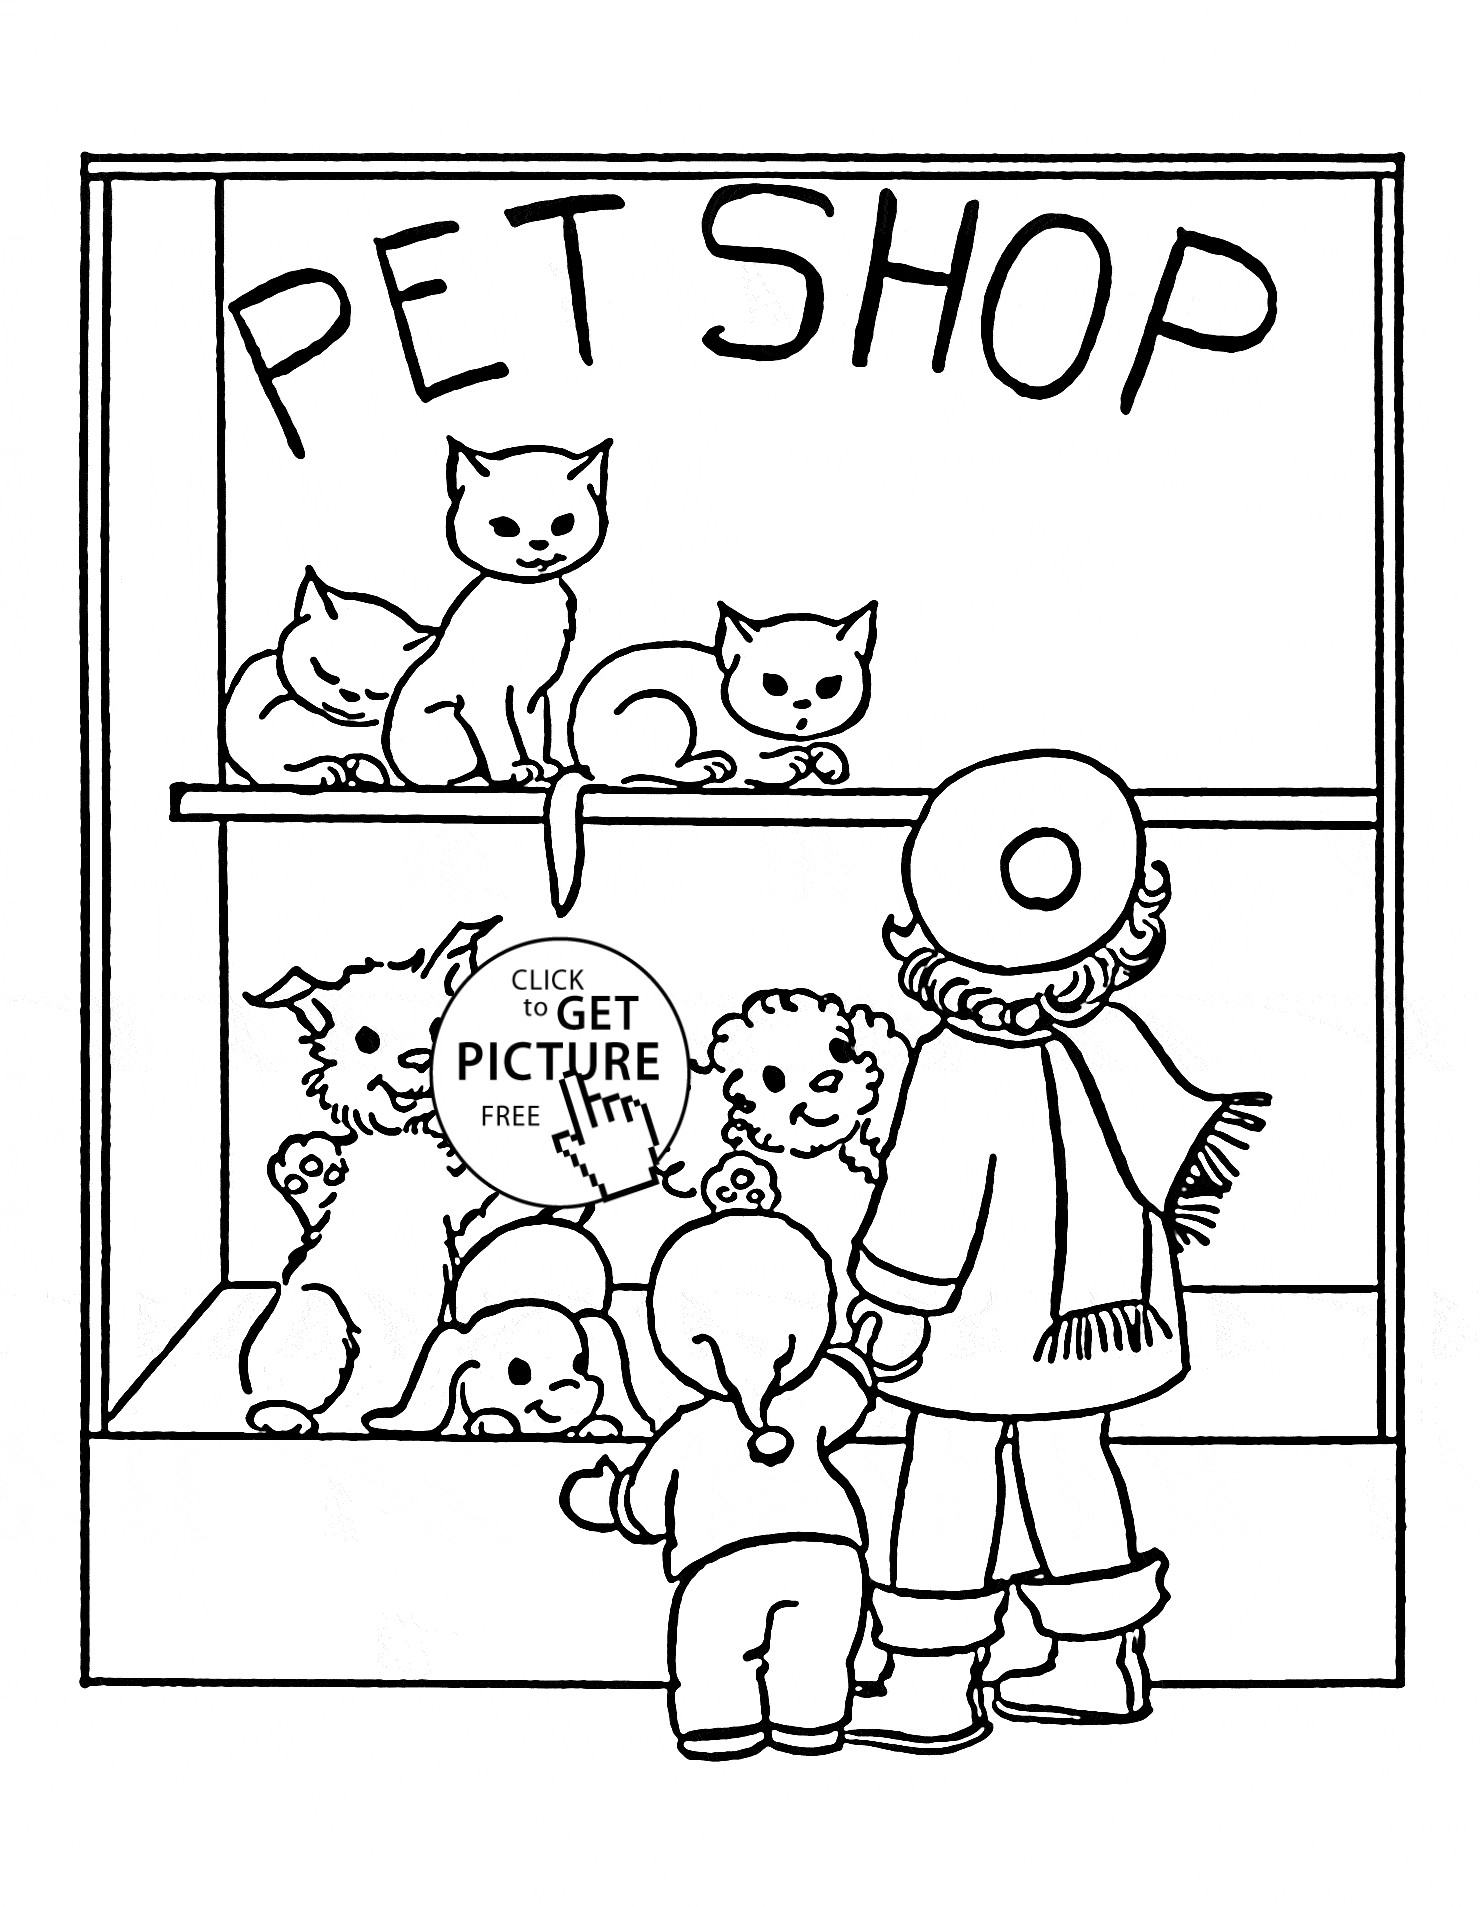 Puppy Dog Coloring Pages Puppy Dog Face Coloring Page Lovely Best Od Dog Coloring Pages Free